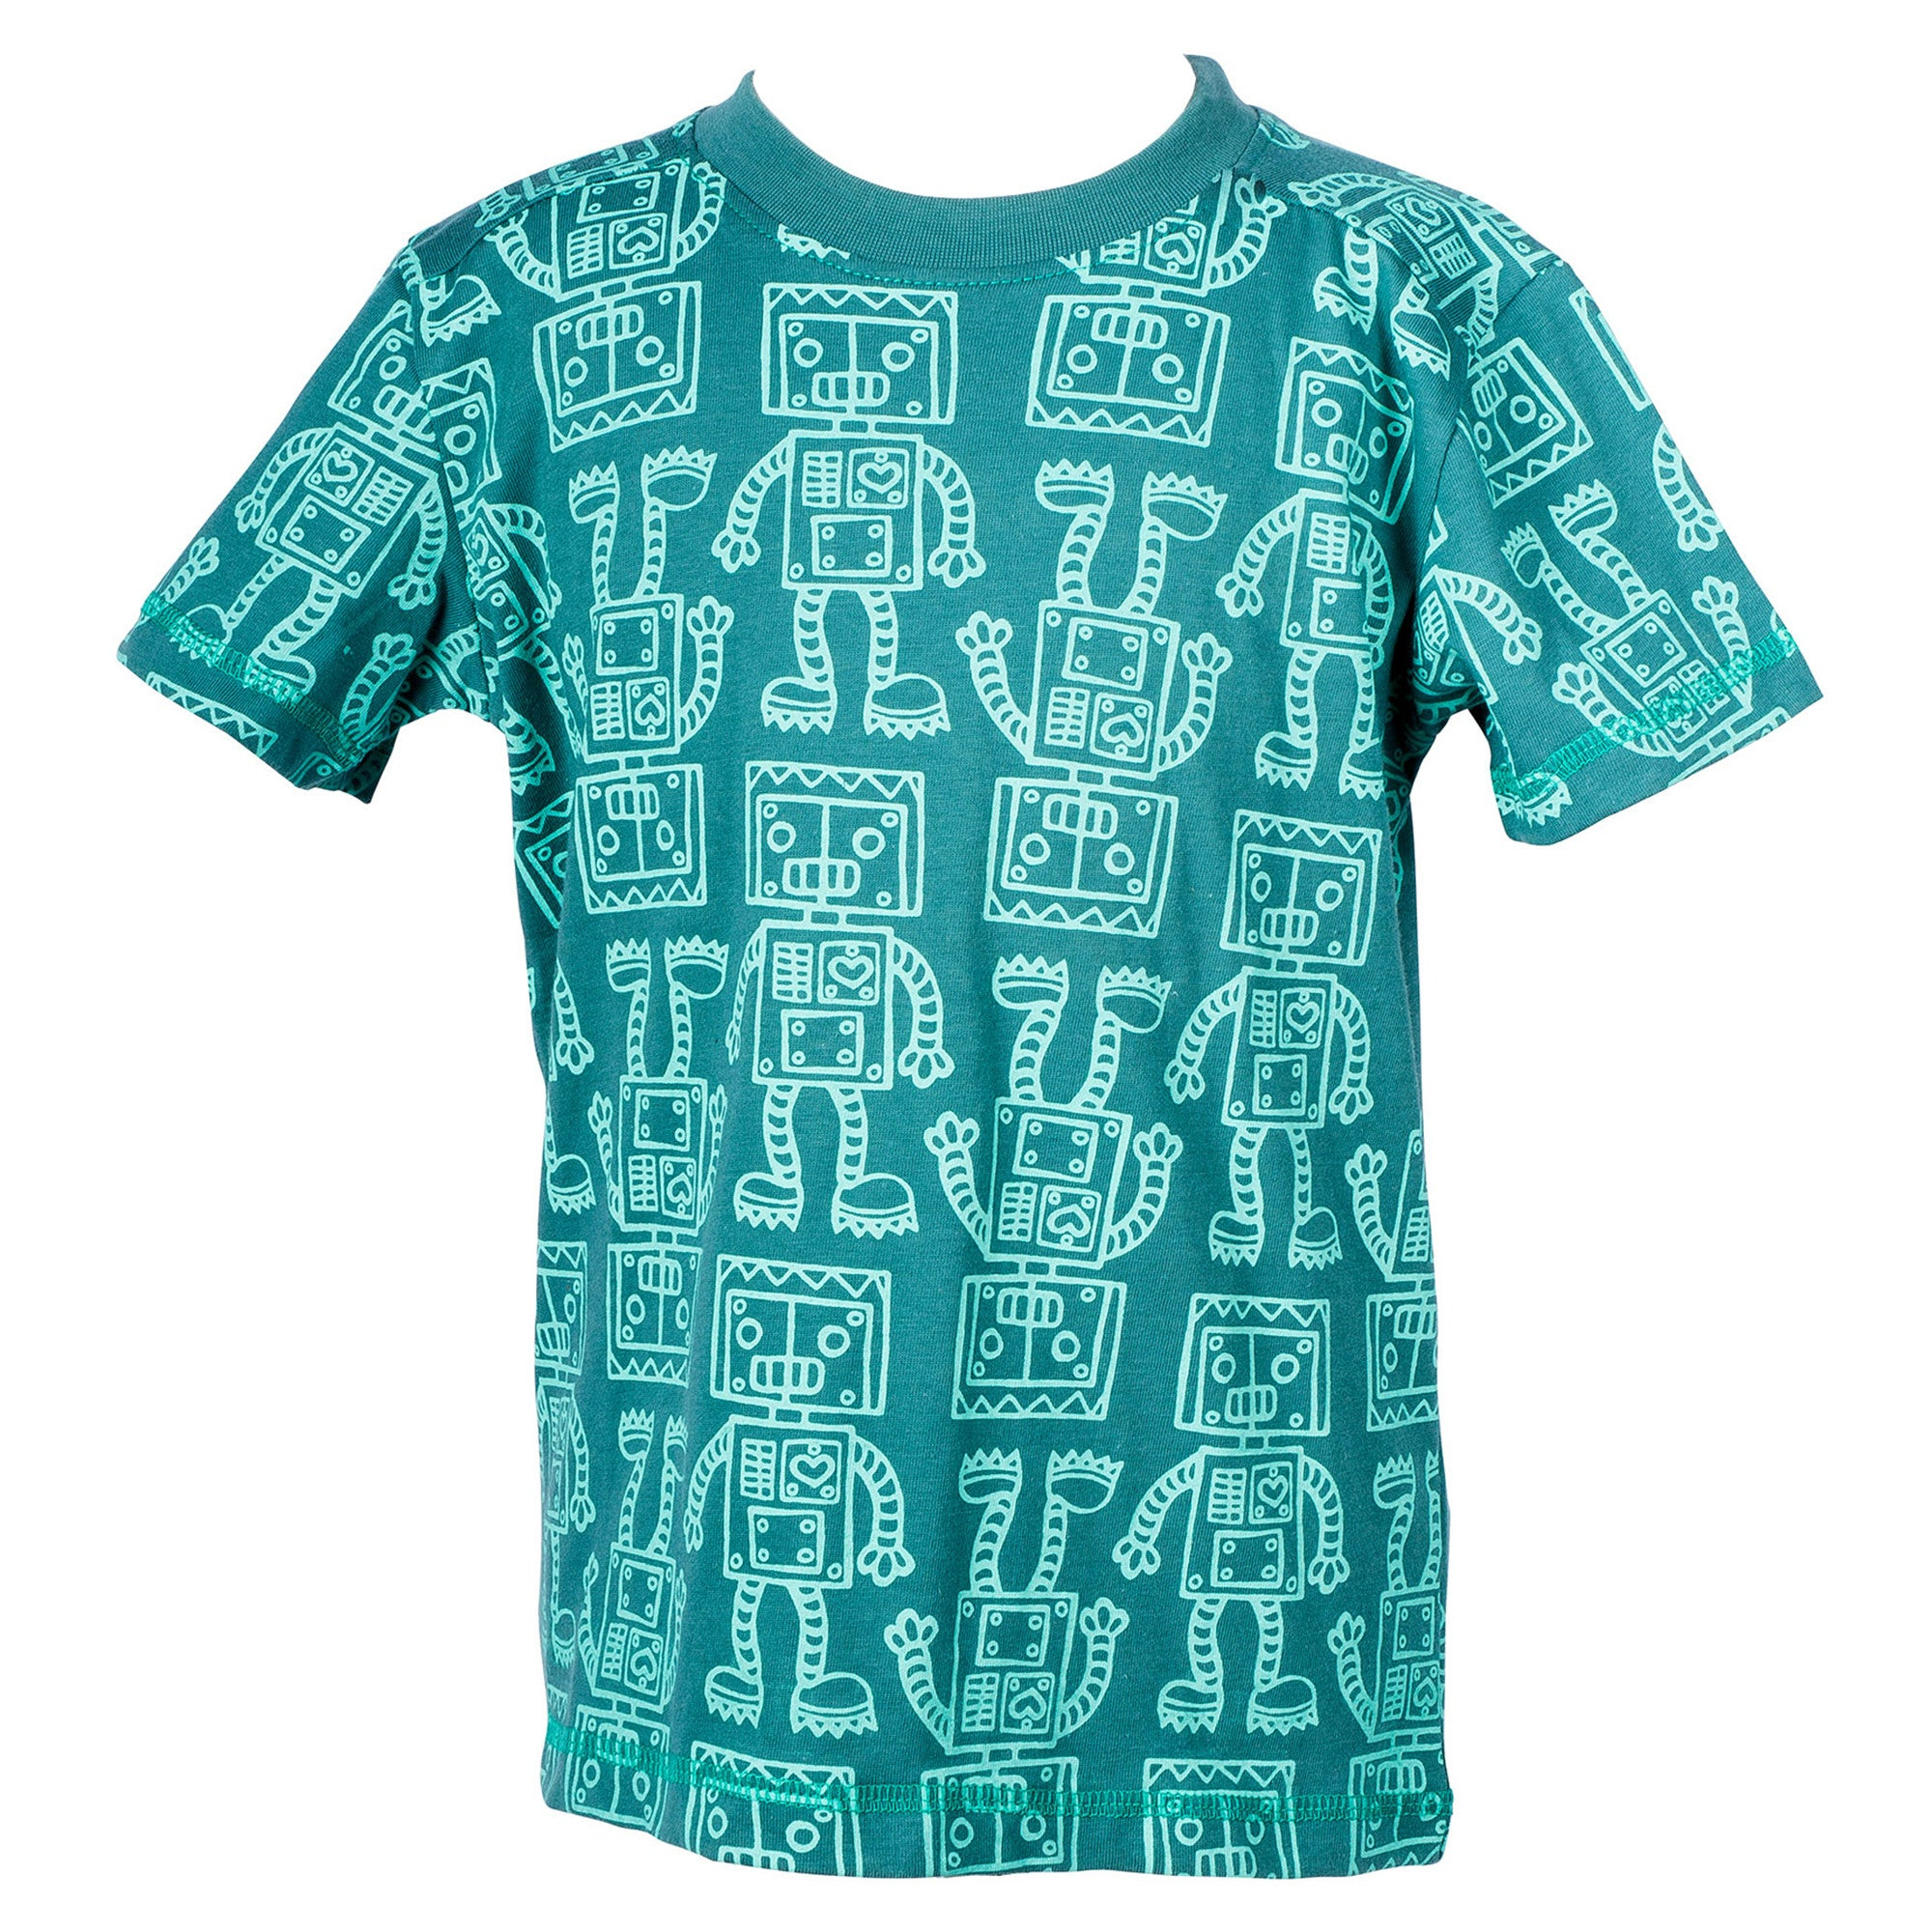 Green Robots boy's t-shirt